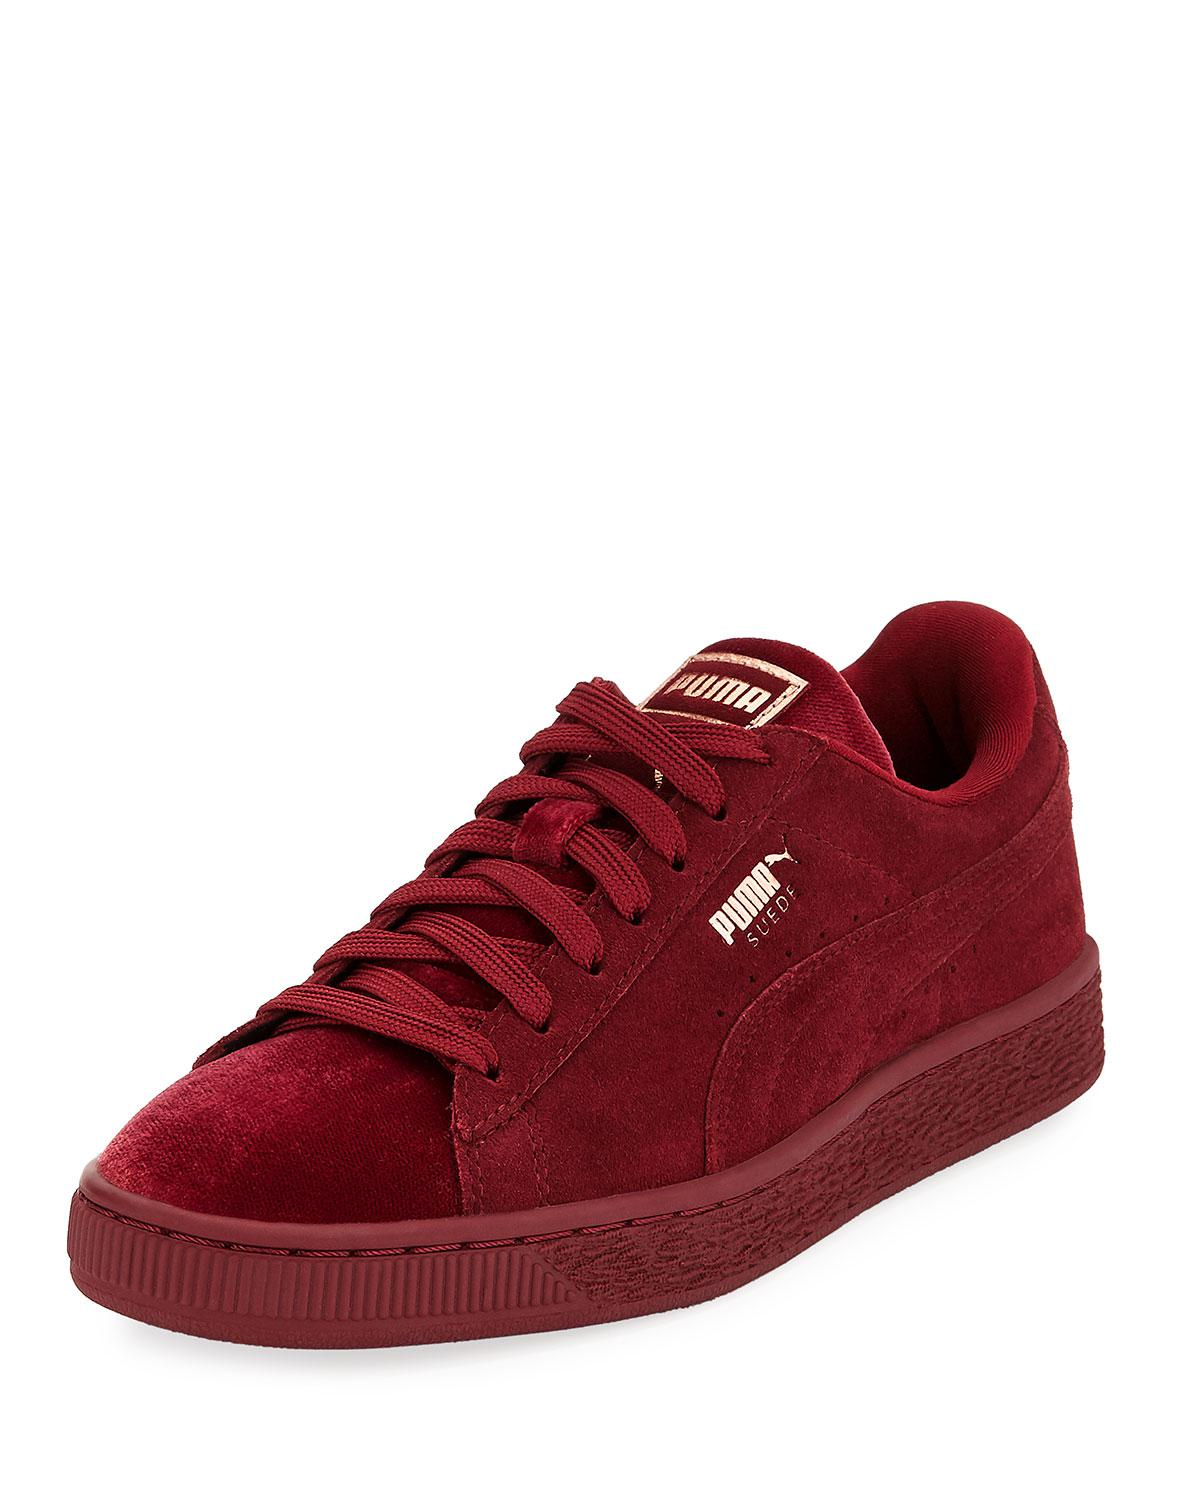 premium selection bebfc dd775 PUMA Red Classic Suede And Velvet Sneakers